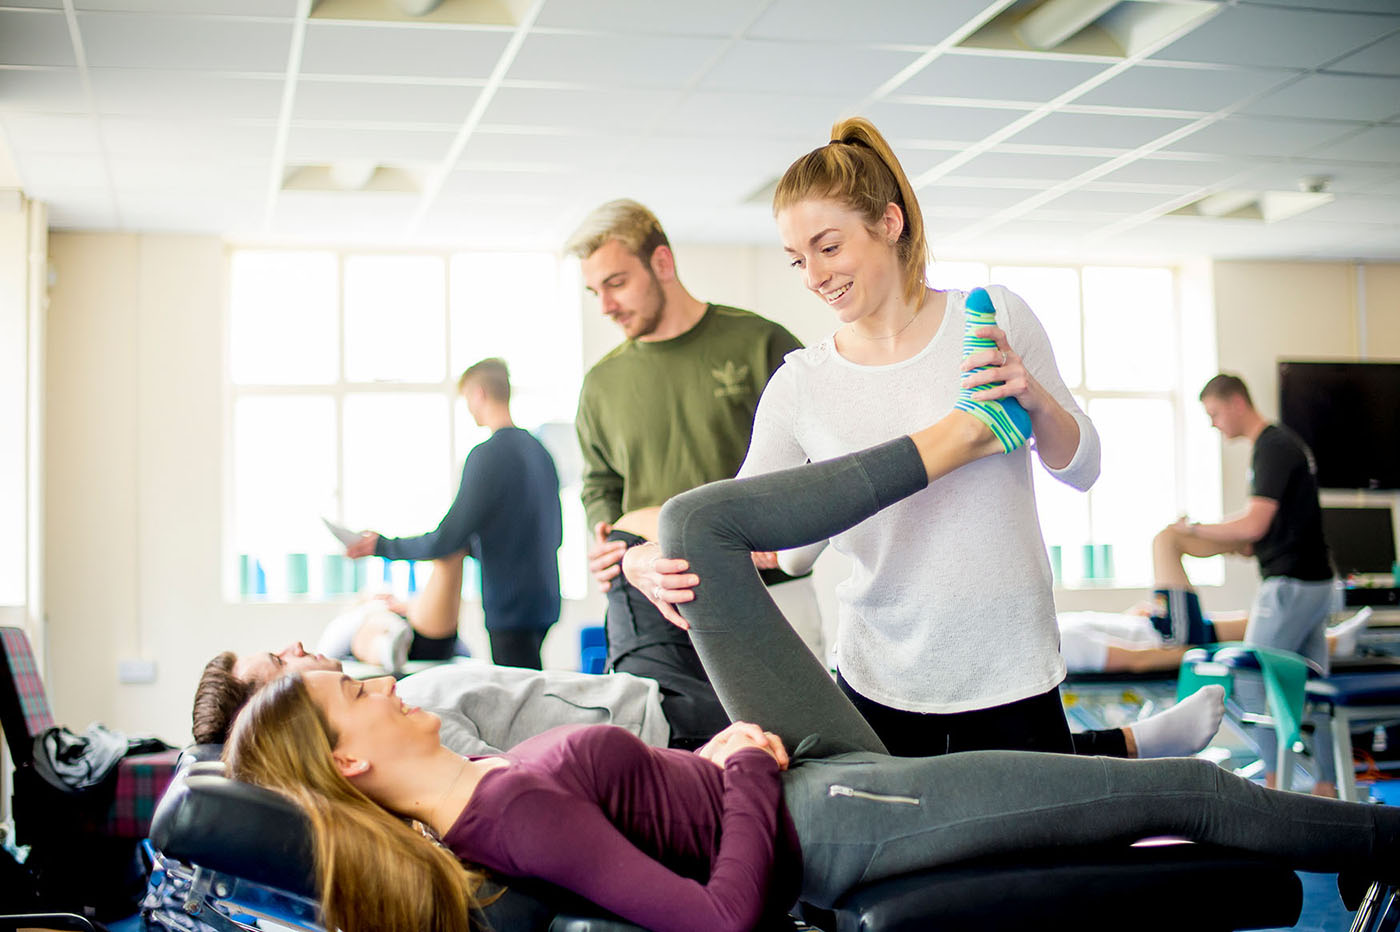 Master of Chiropractic Degree - MChiro Course | AECC University College |  AECC University College | Transforming lives through Health Sciences